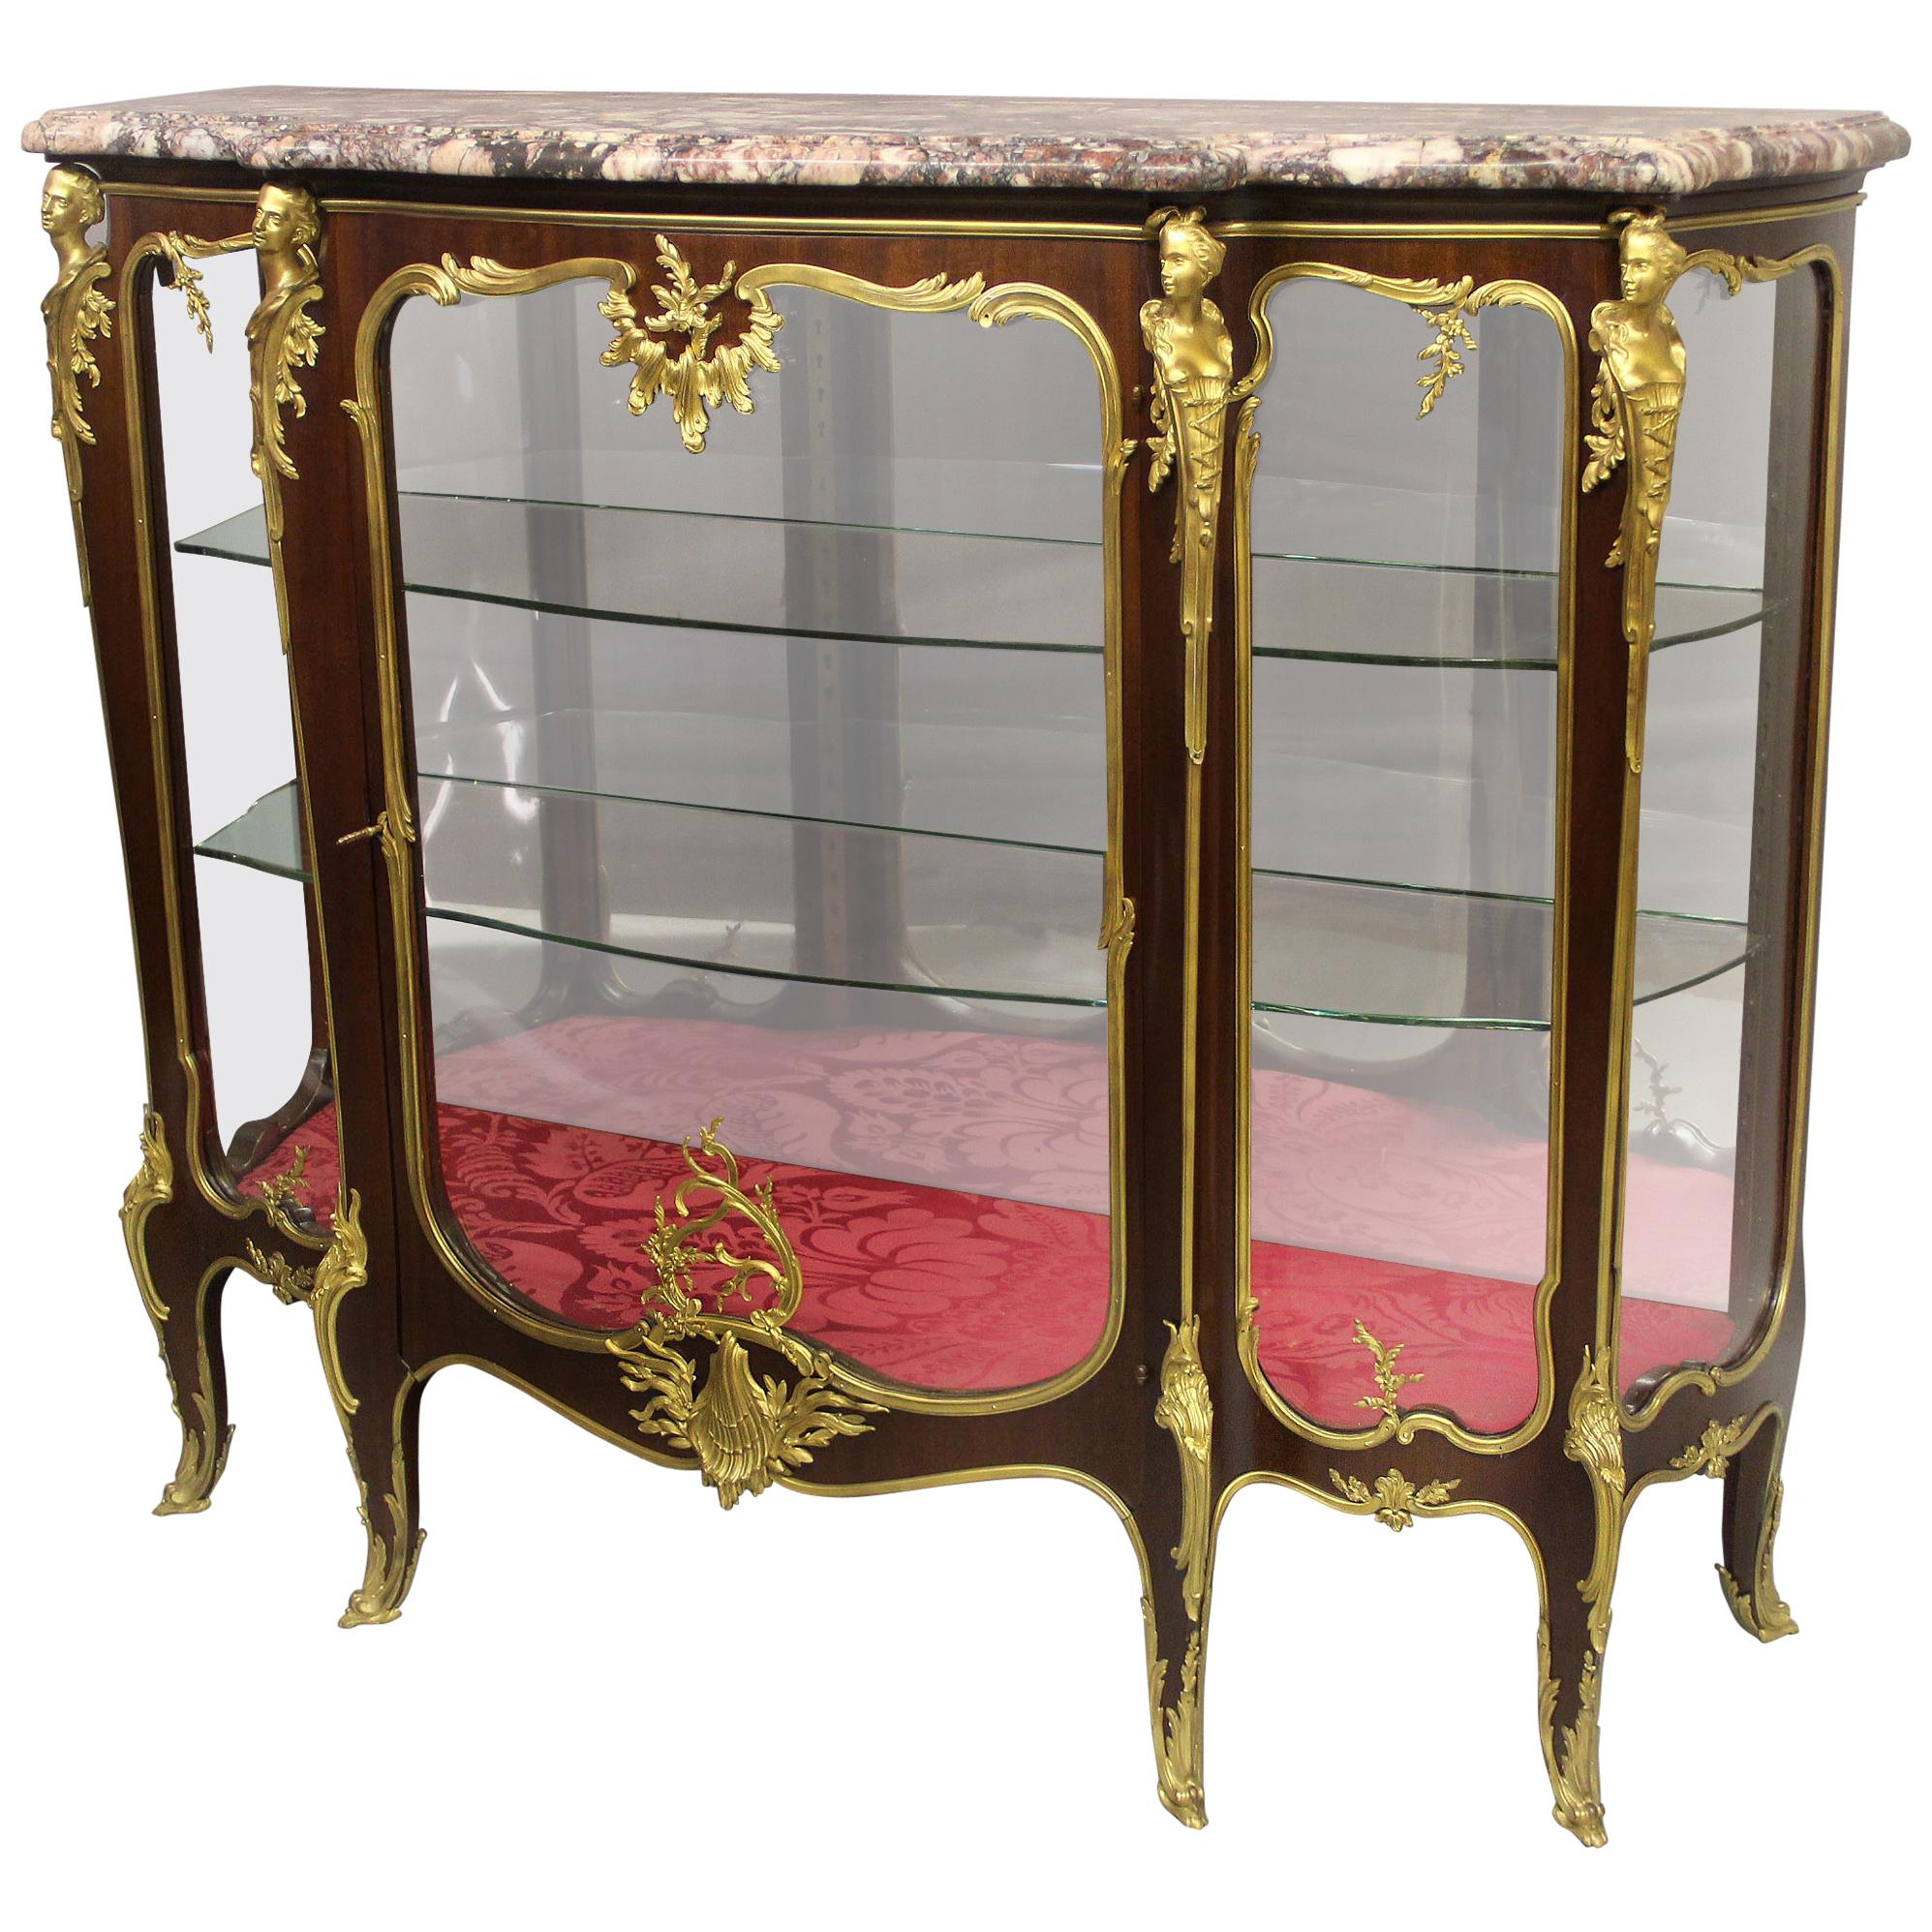 Exceptional Late 19th Century Gilt Bronze Mounted Vitrine by François Linke